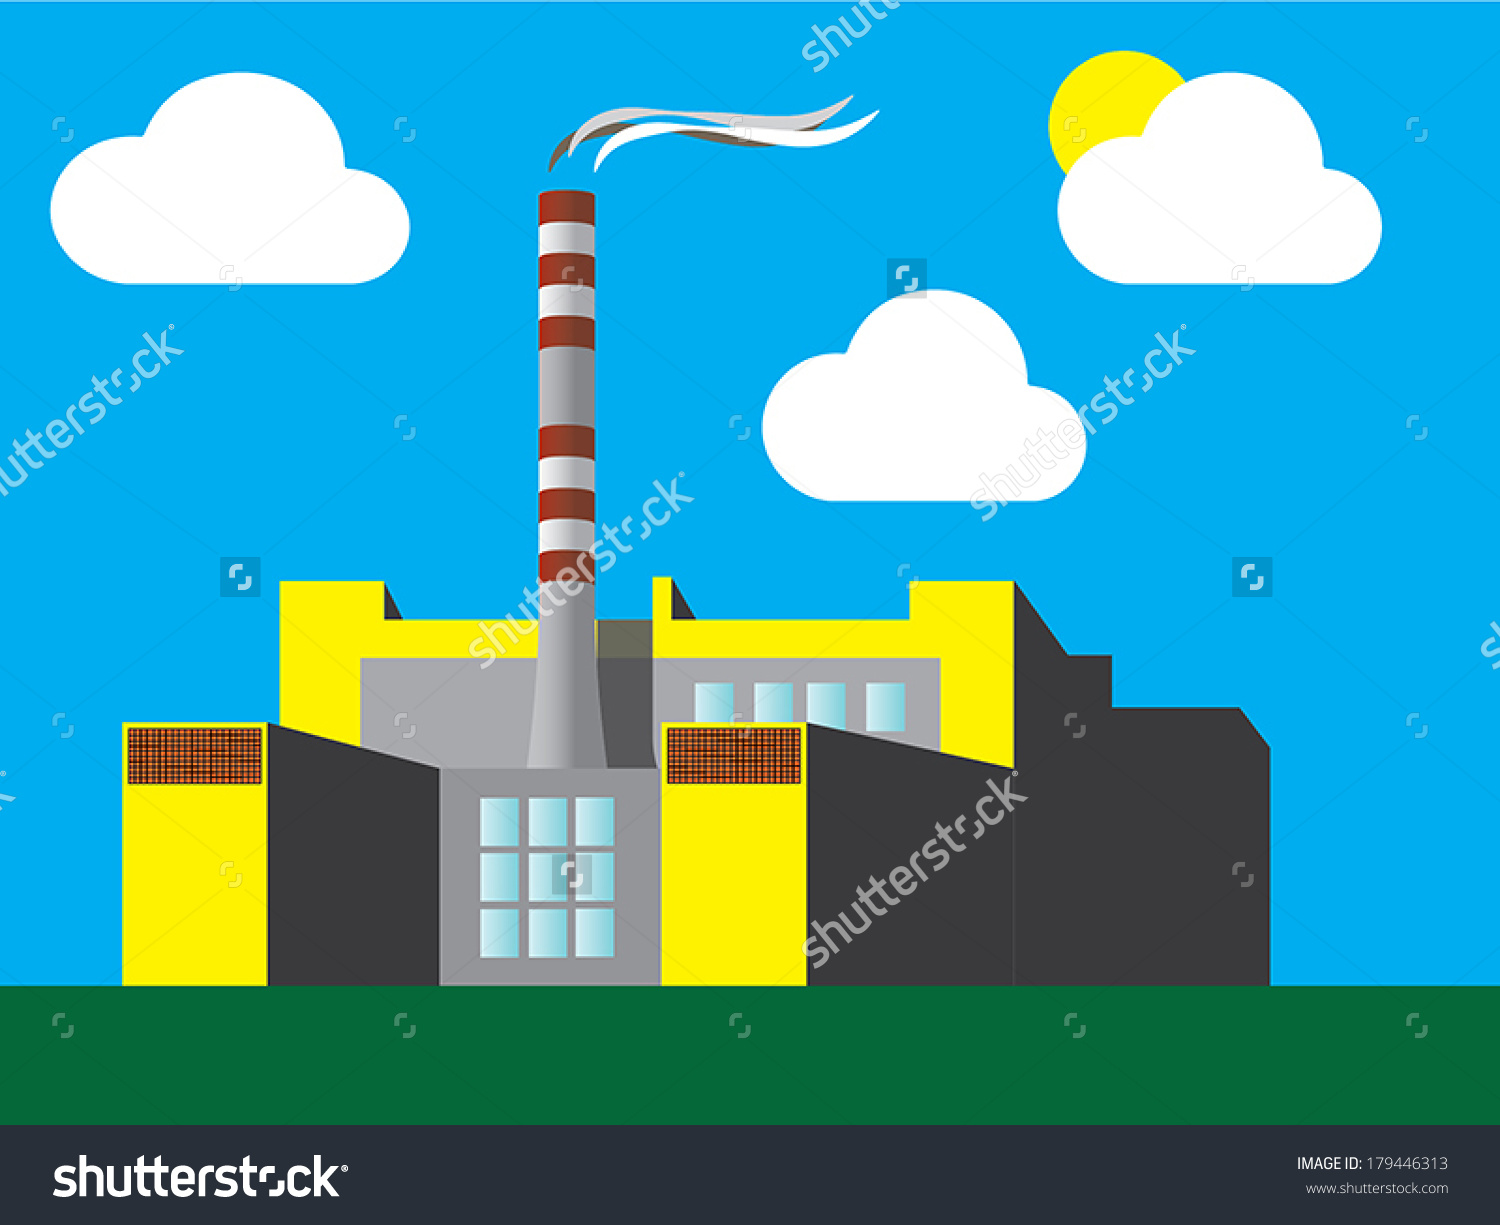 Factory Drawing Inspired By Garbage Incinerator Stock Vector.